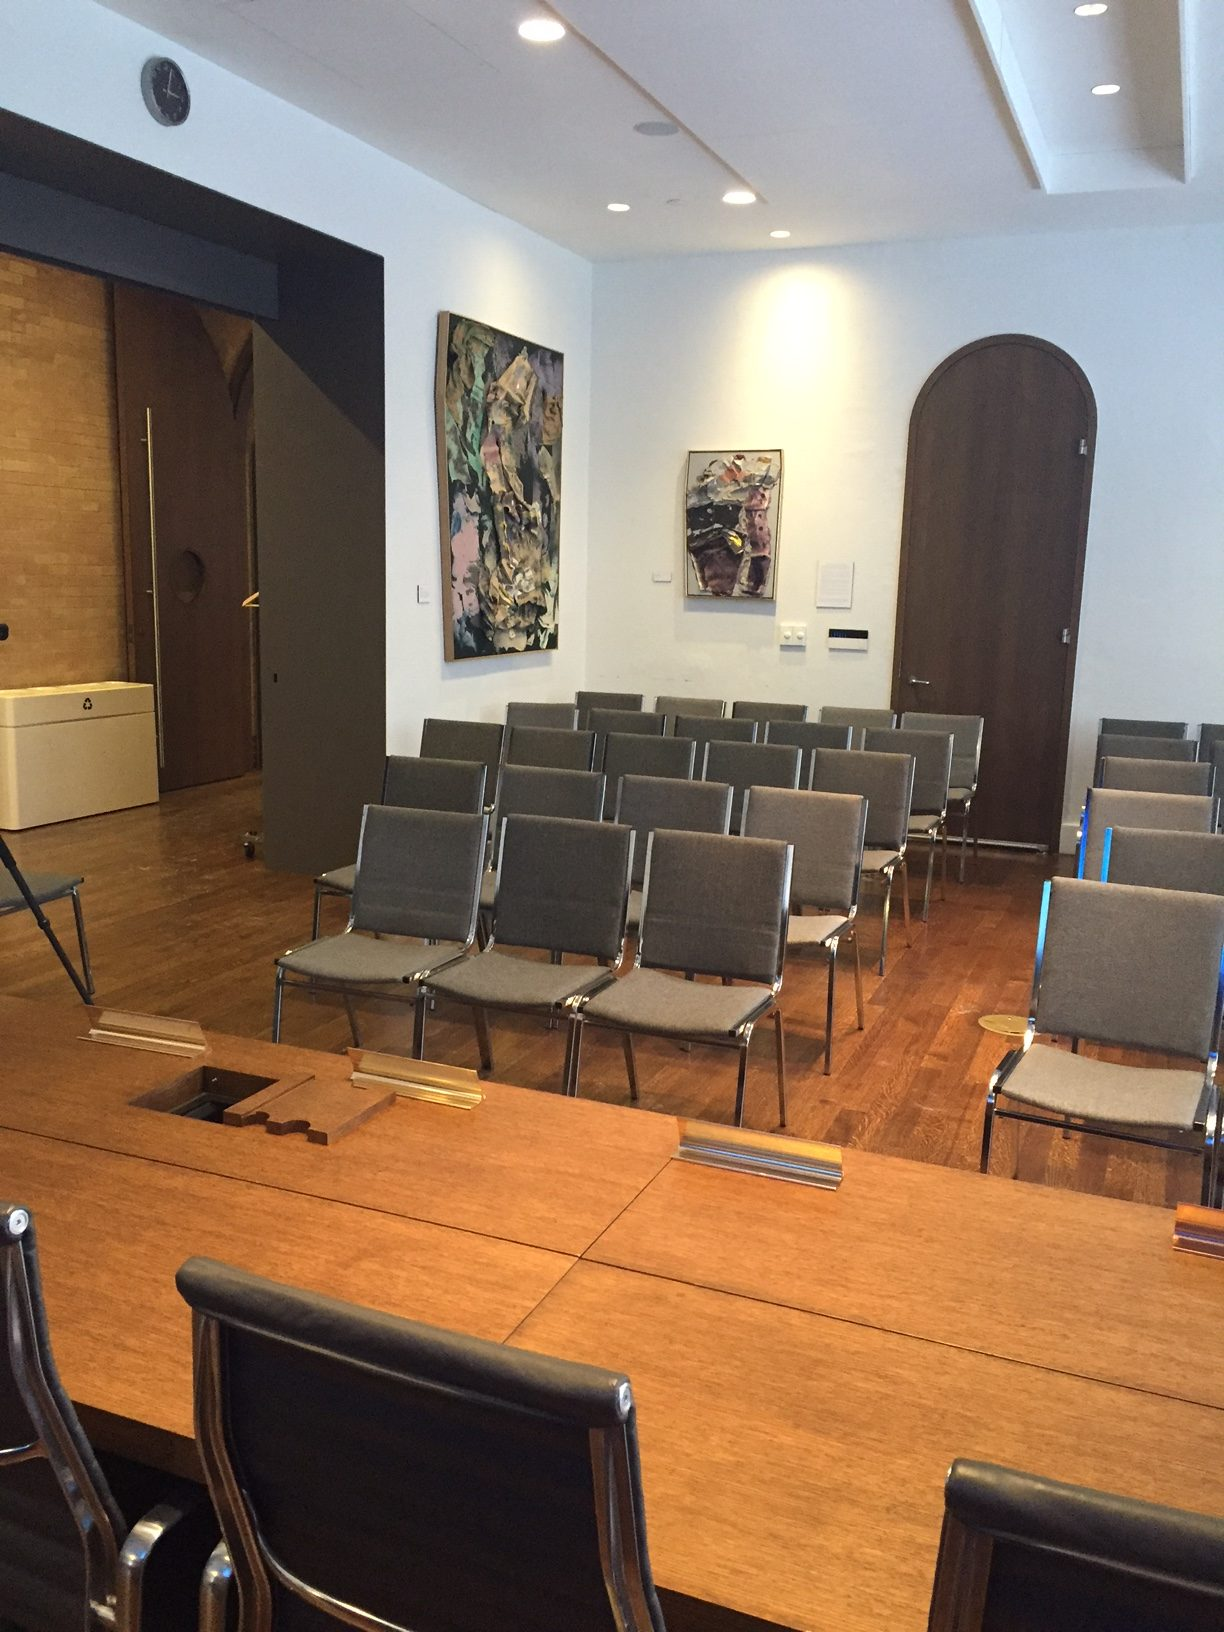 Theatre-style seating at The Boardroom location at 315 Bloor Street West